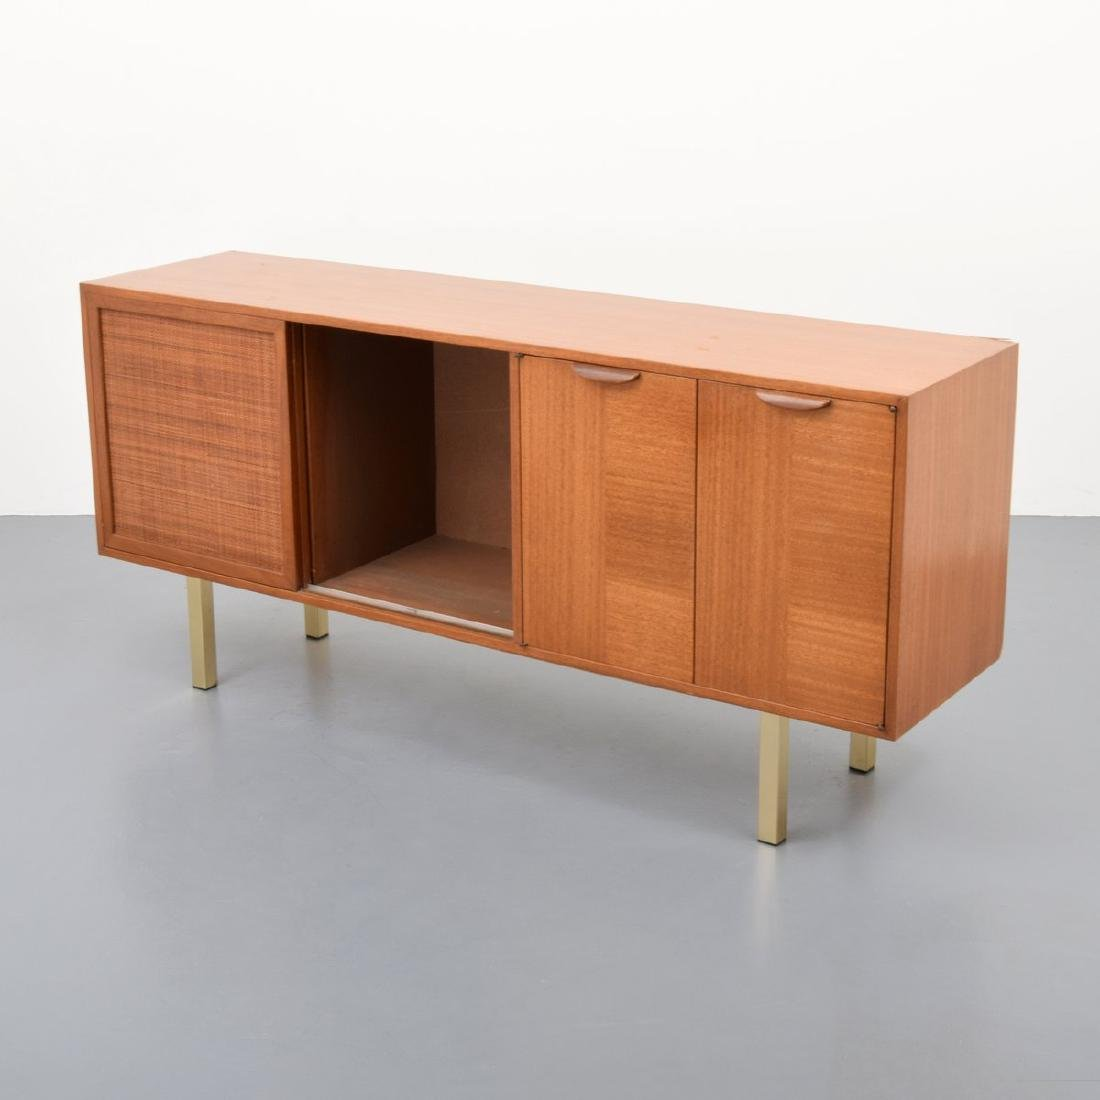 Harvey Probber Cabinet - 9